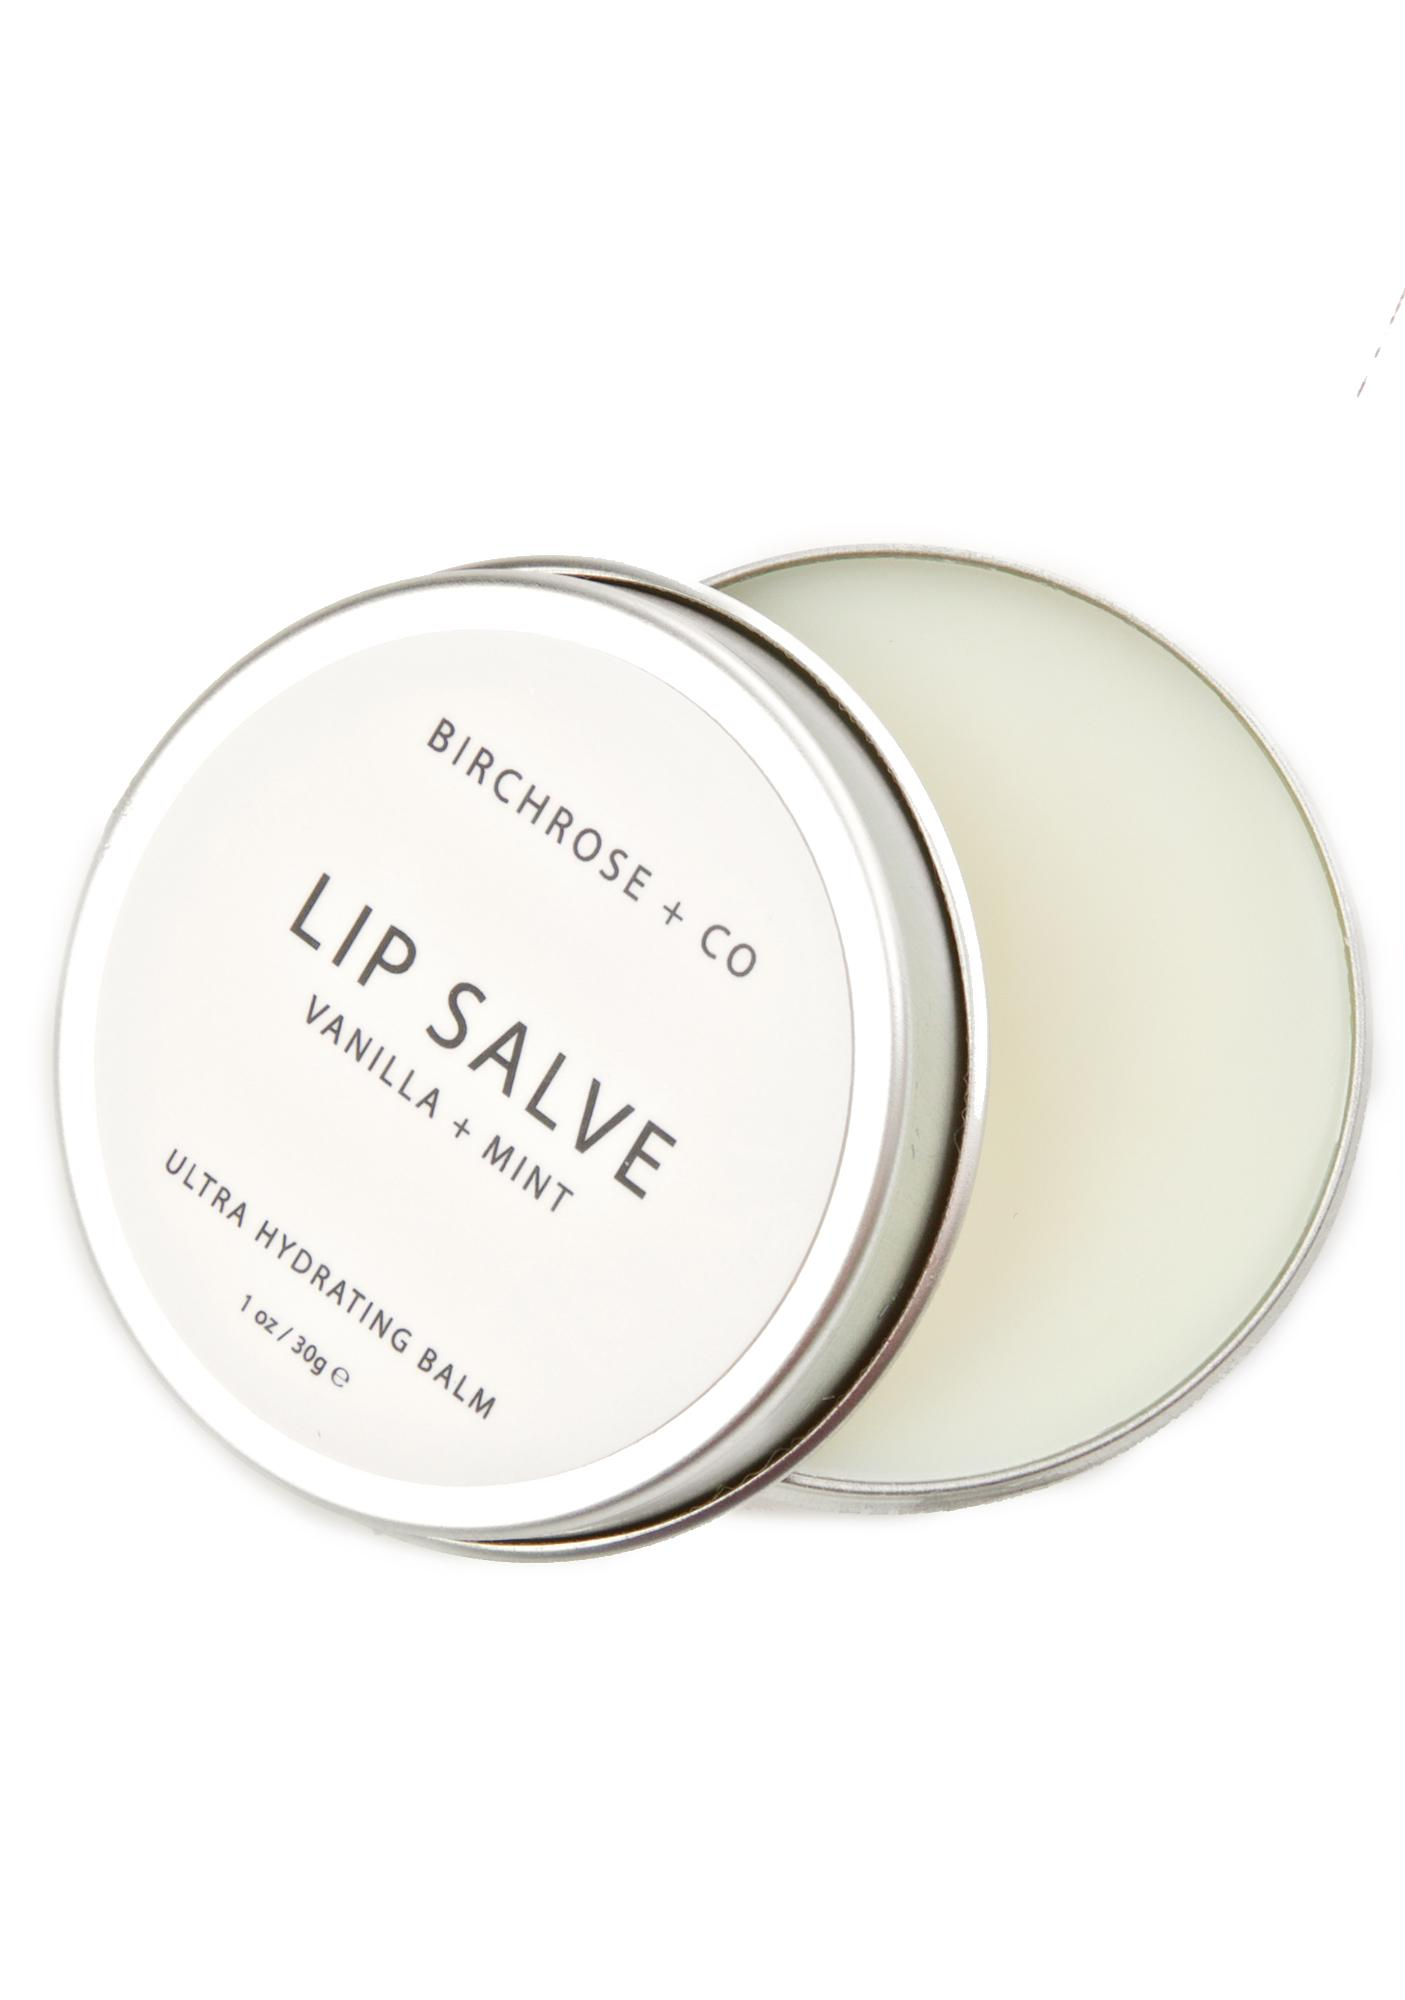 Birchrose + Co Vanilla + Mint Lip Salve